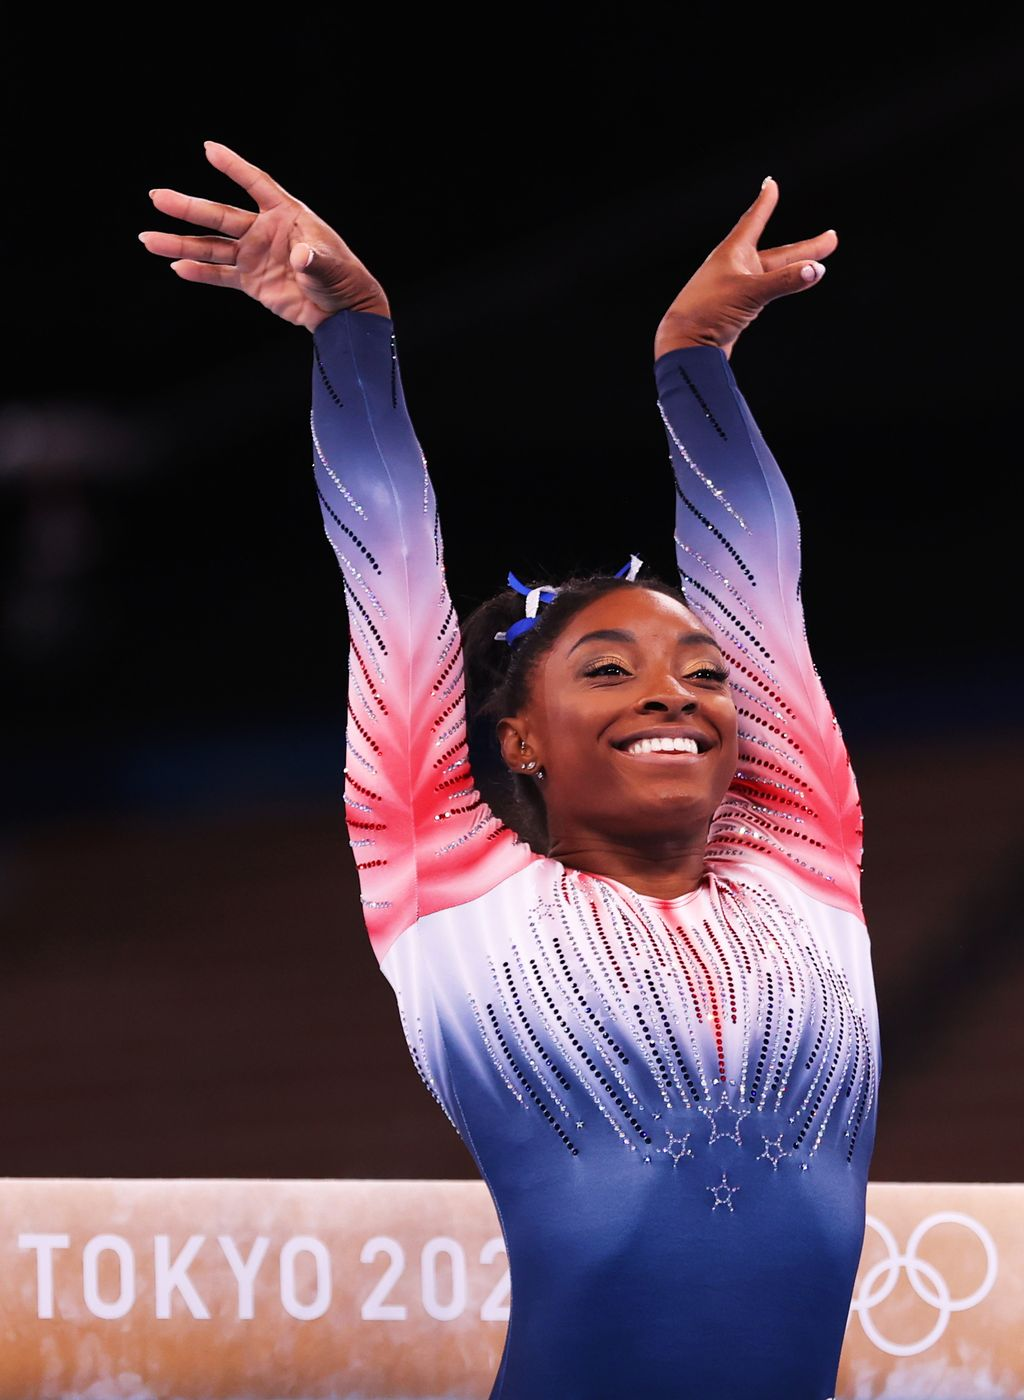 TOKYO, JAPAN - AUGUST 03: Simone Biles of Team United States competes in the Women's Balance Beam Final on day eleven of the Tokyo 2020 Olympic Games at Ariake Gymnastics Centre on August 03, 2021 in Tokyo, Japan. (Photo by Laurence Griffiths/Getty Images)